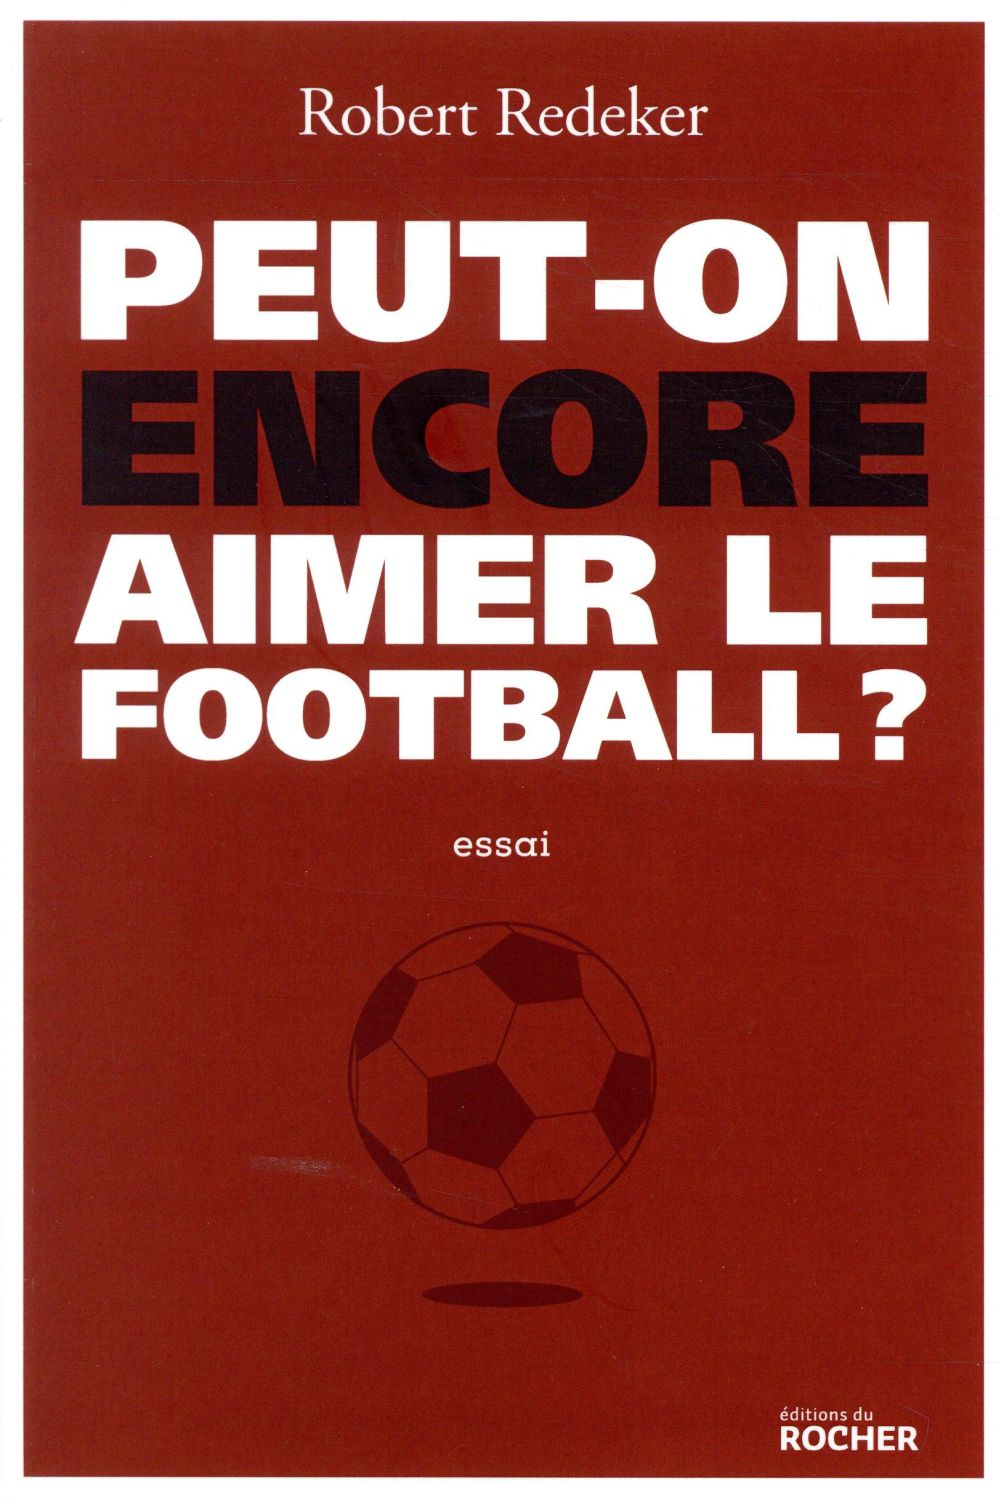 Peut-on encore aimer le football ?